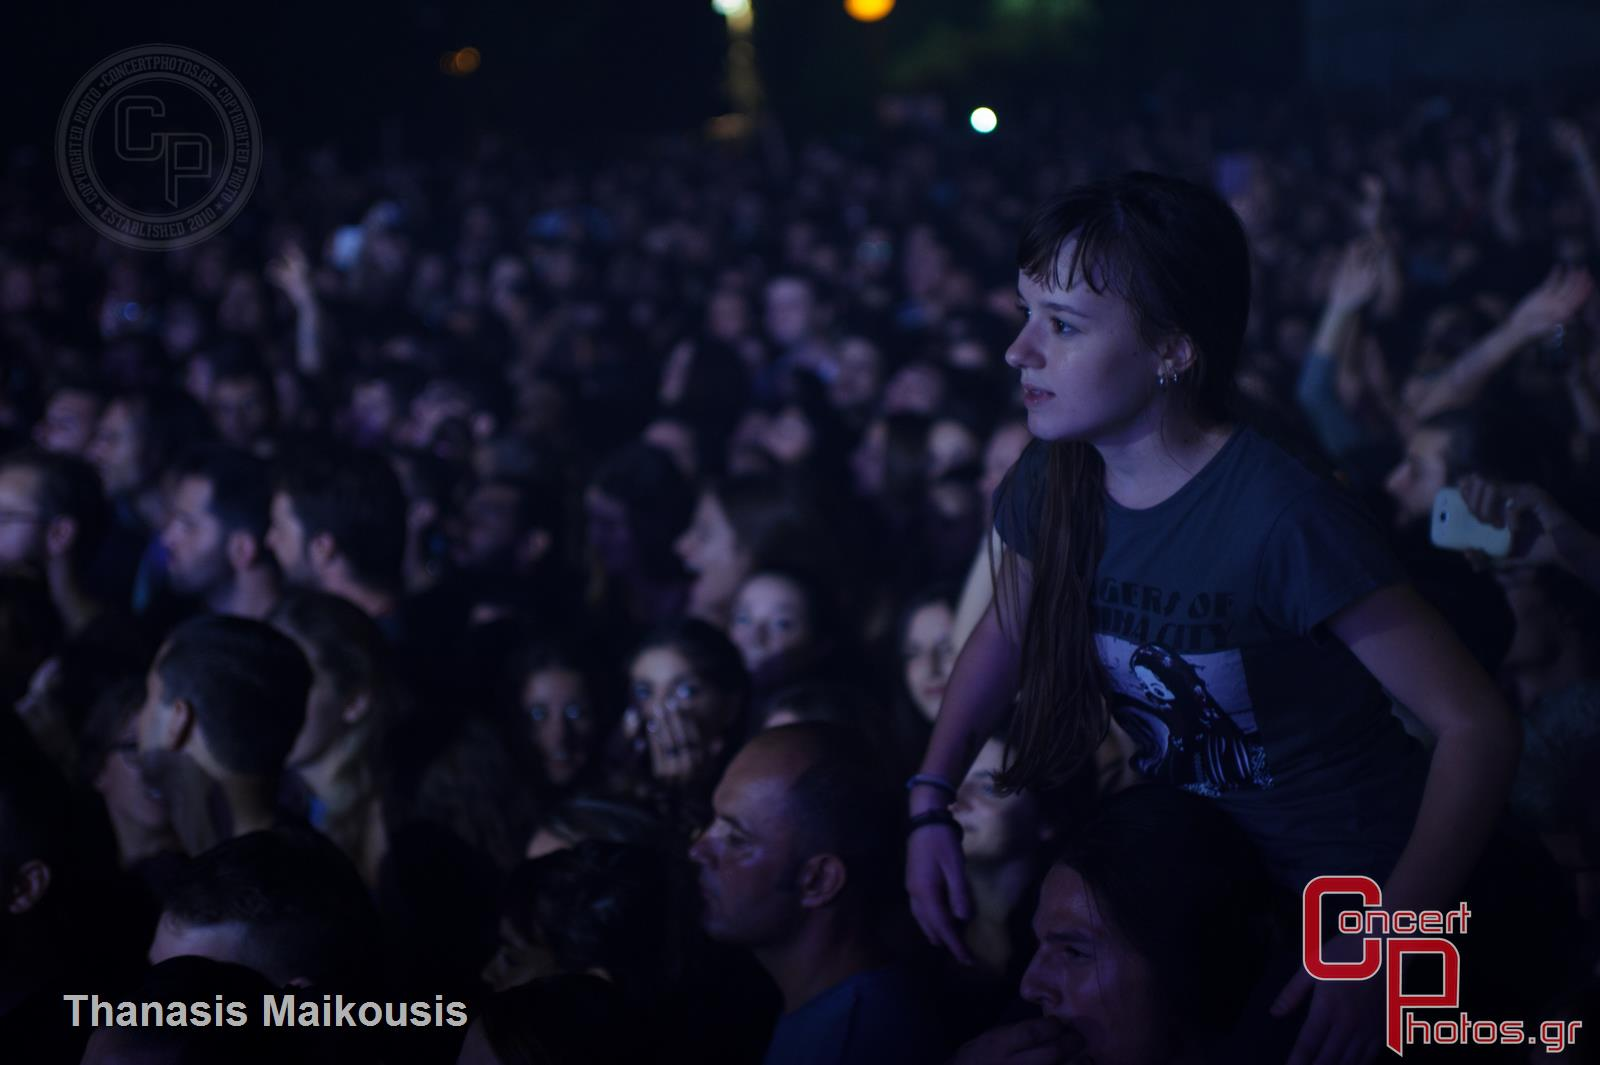 VIC-VIC-Technopolis photographer: Thanasis Maikousis - concertphotos_20150925_22_04_39